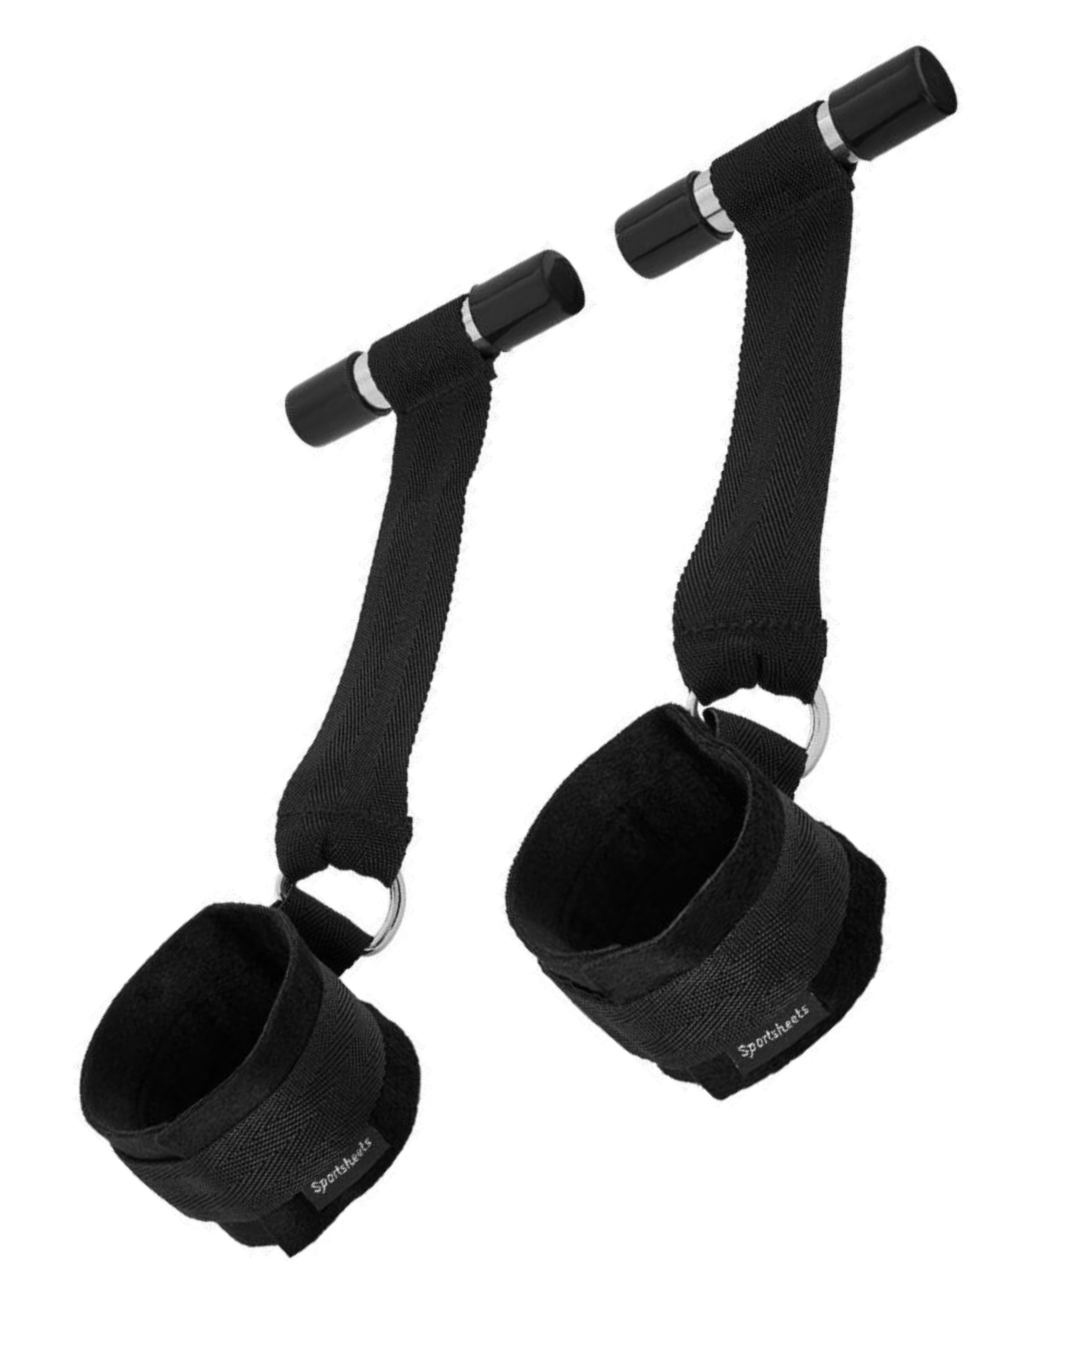 Door Jam Cuffs by Sportsheets - Black with the cuffs done up